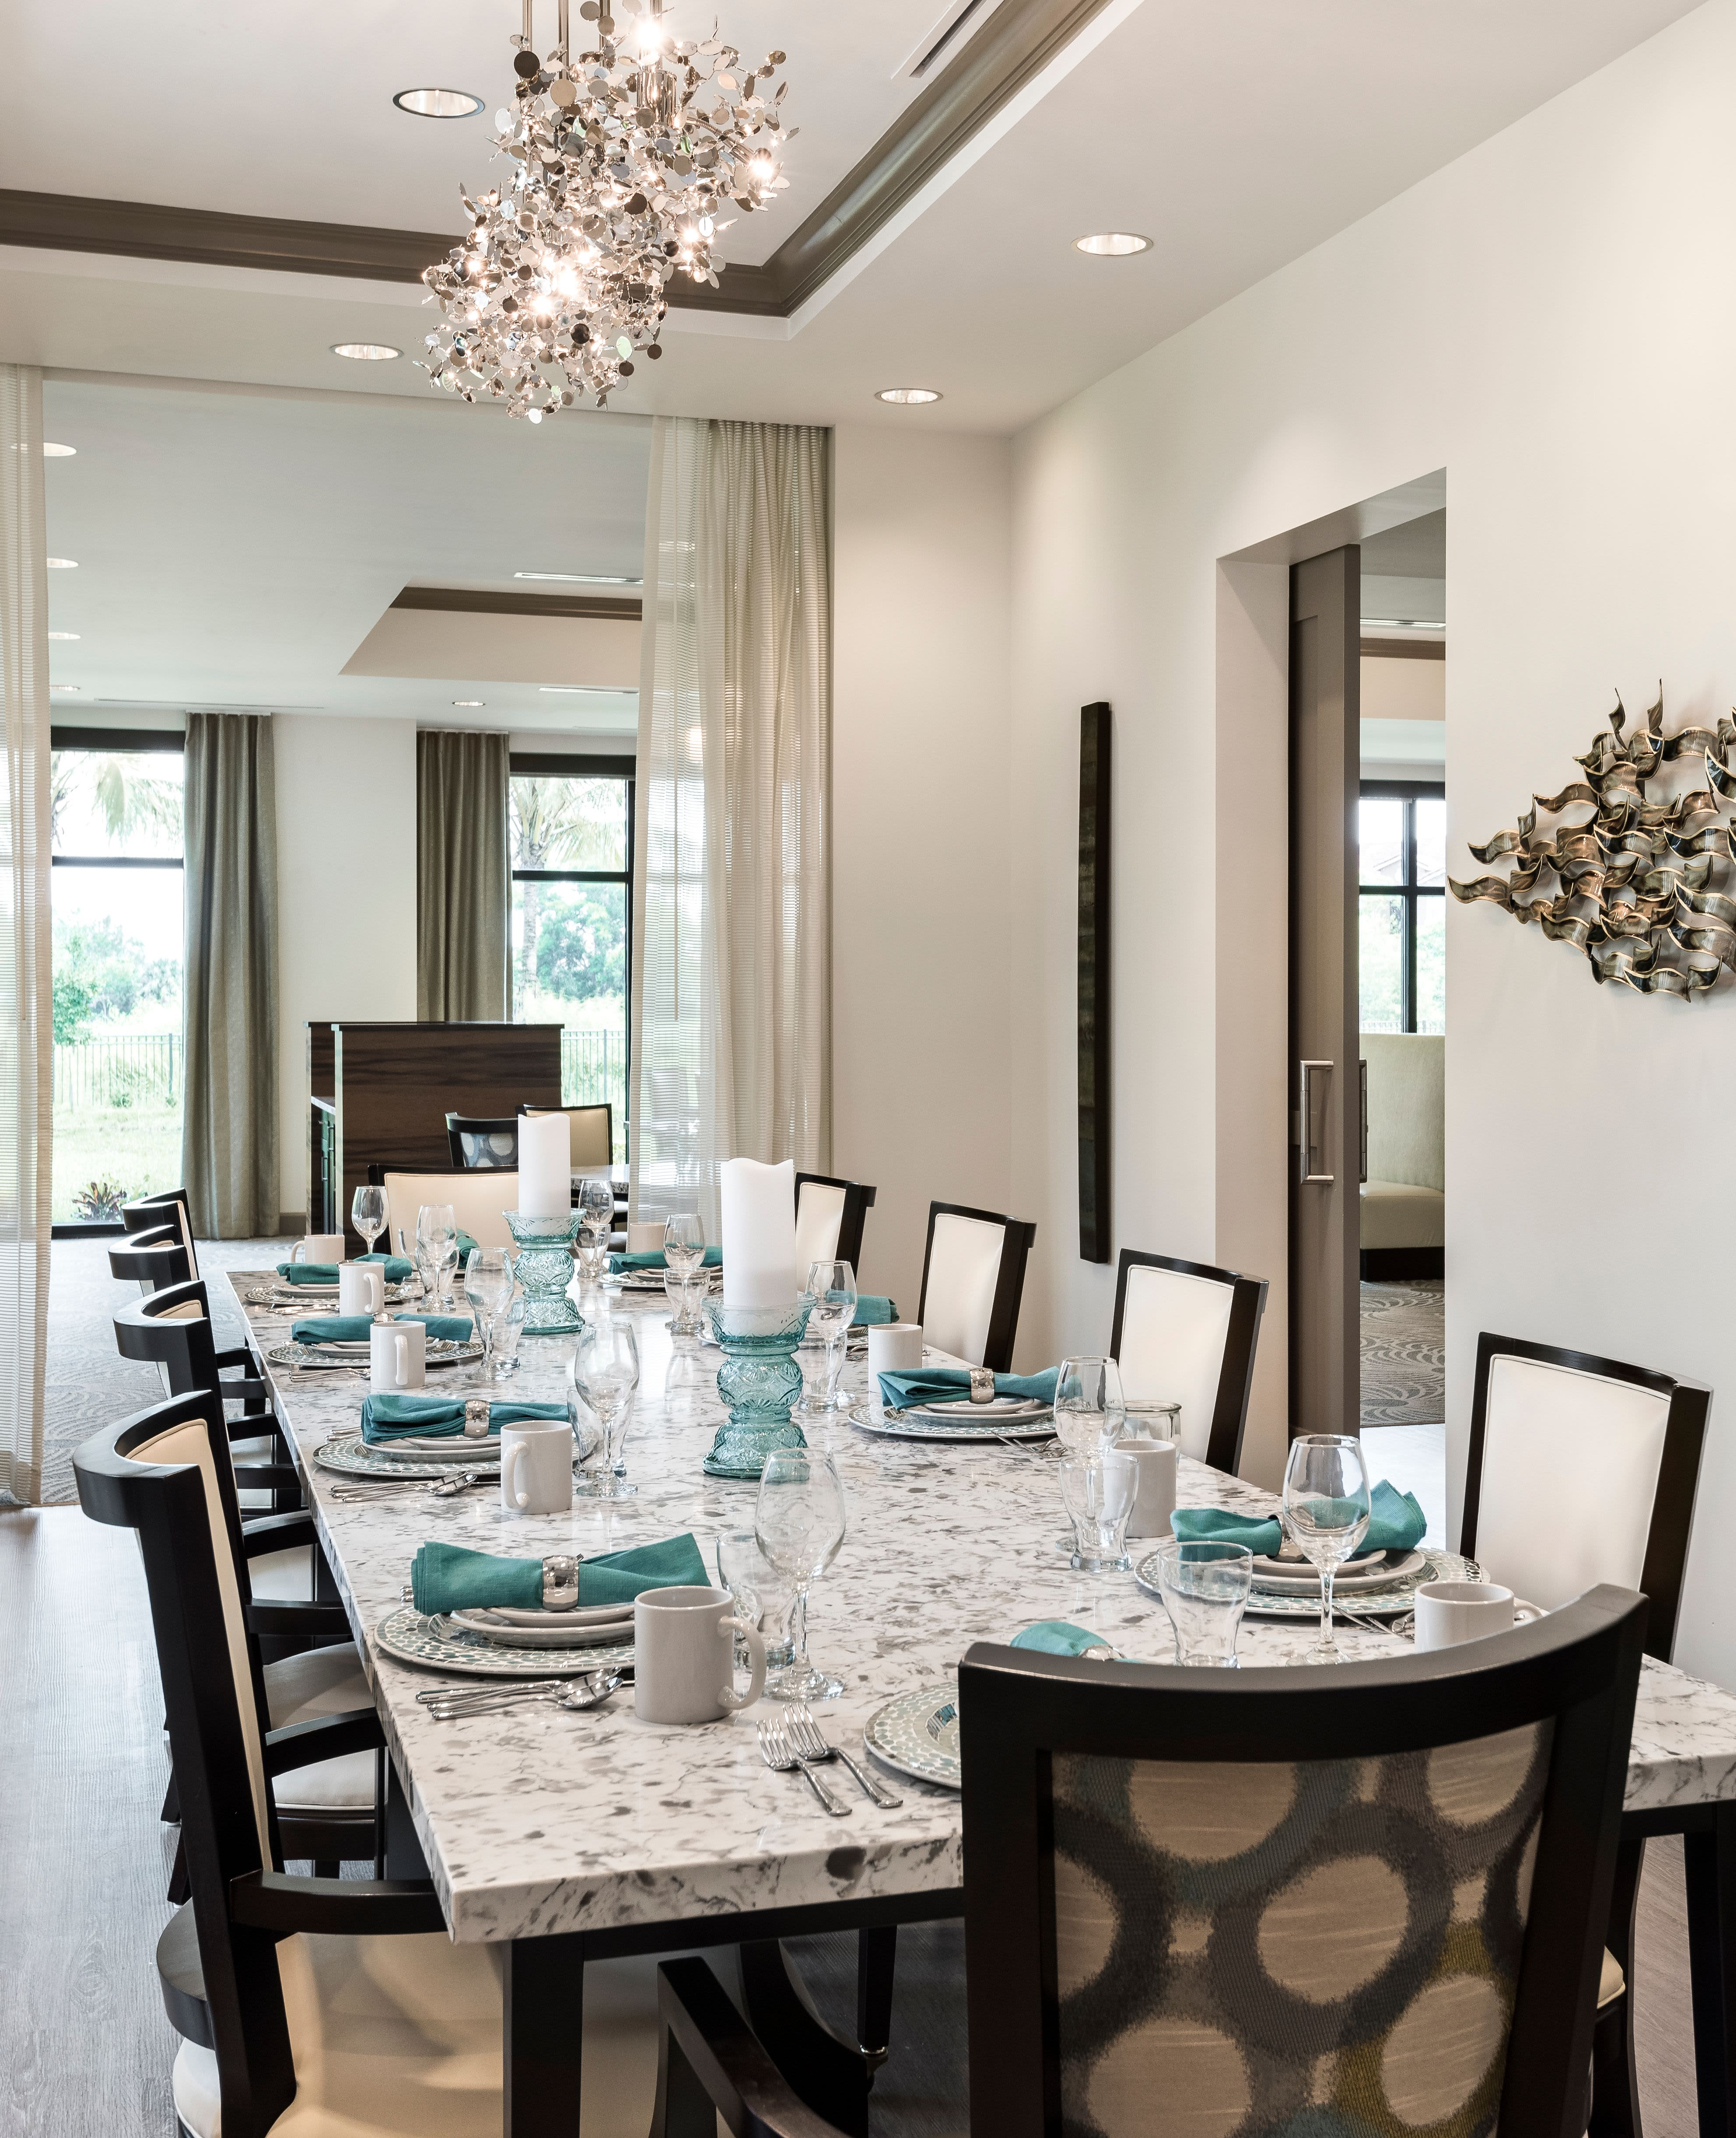 Learn about our dining program at Inspired Living Delray Beach in Delray Beach, Florida